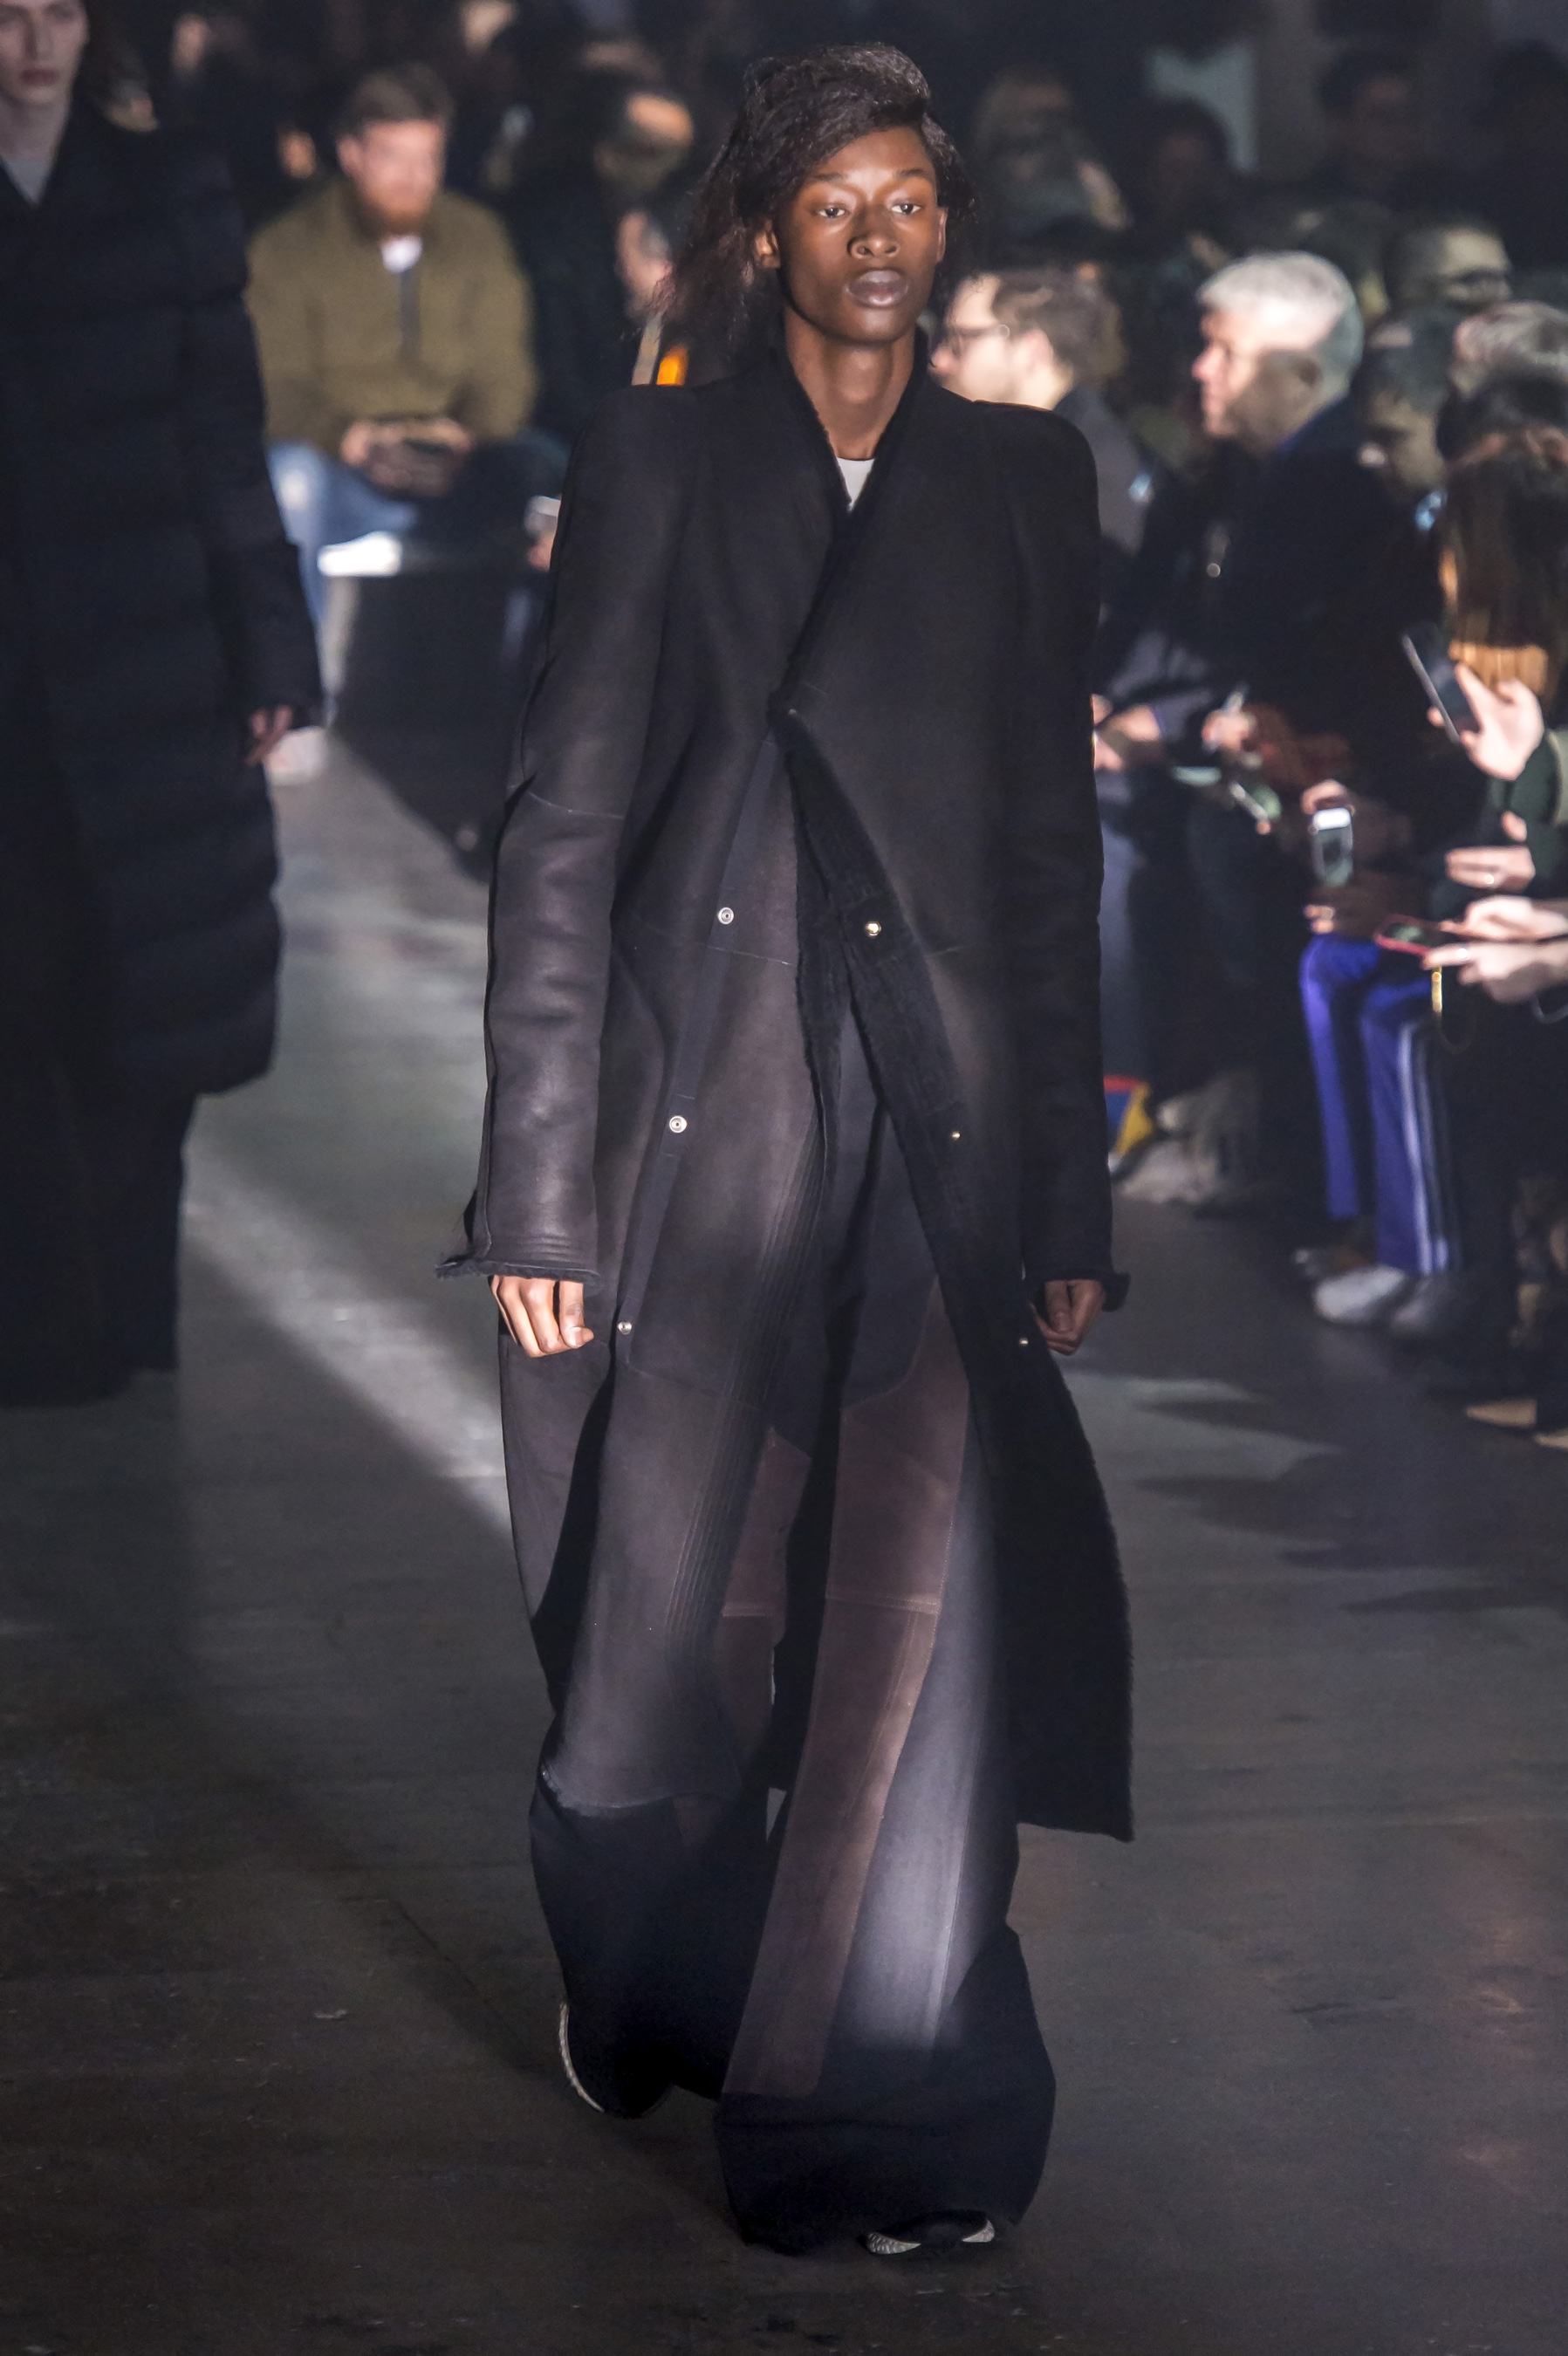 Rick Owens Fall 2019 Men's Fashion Show